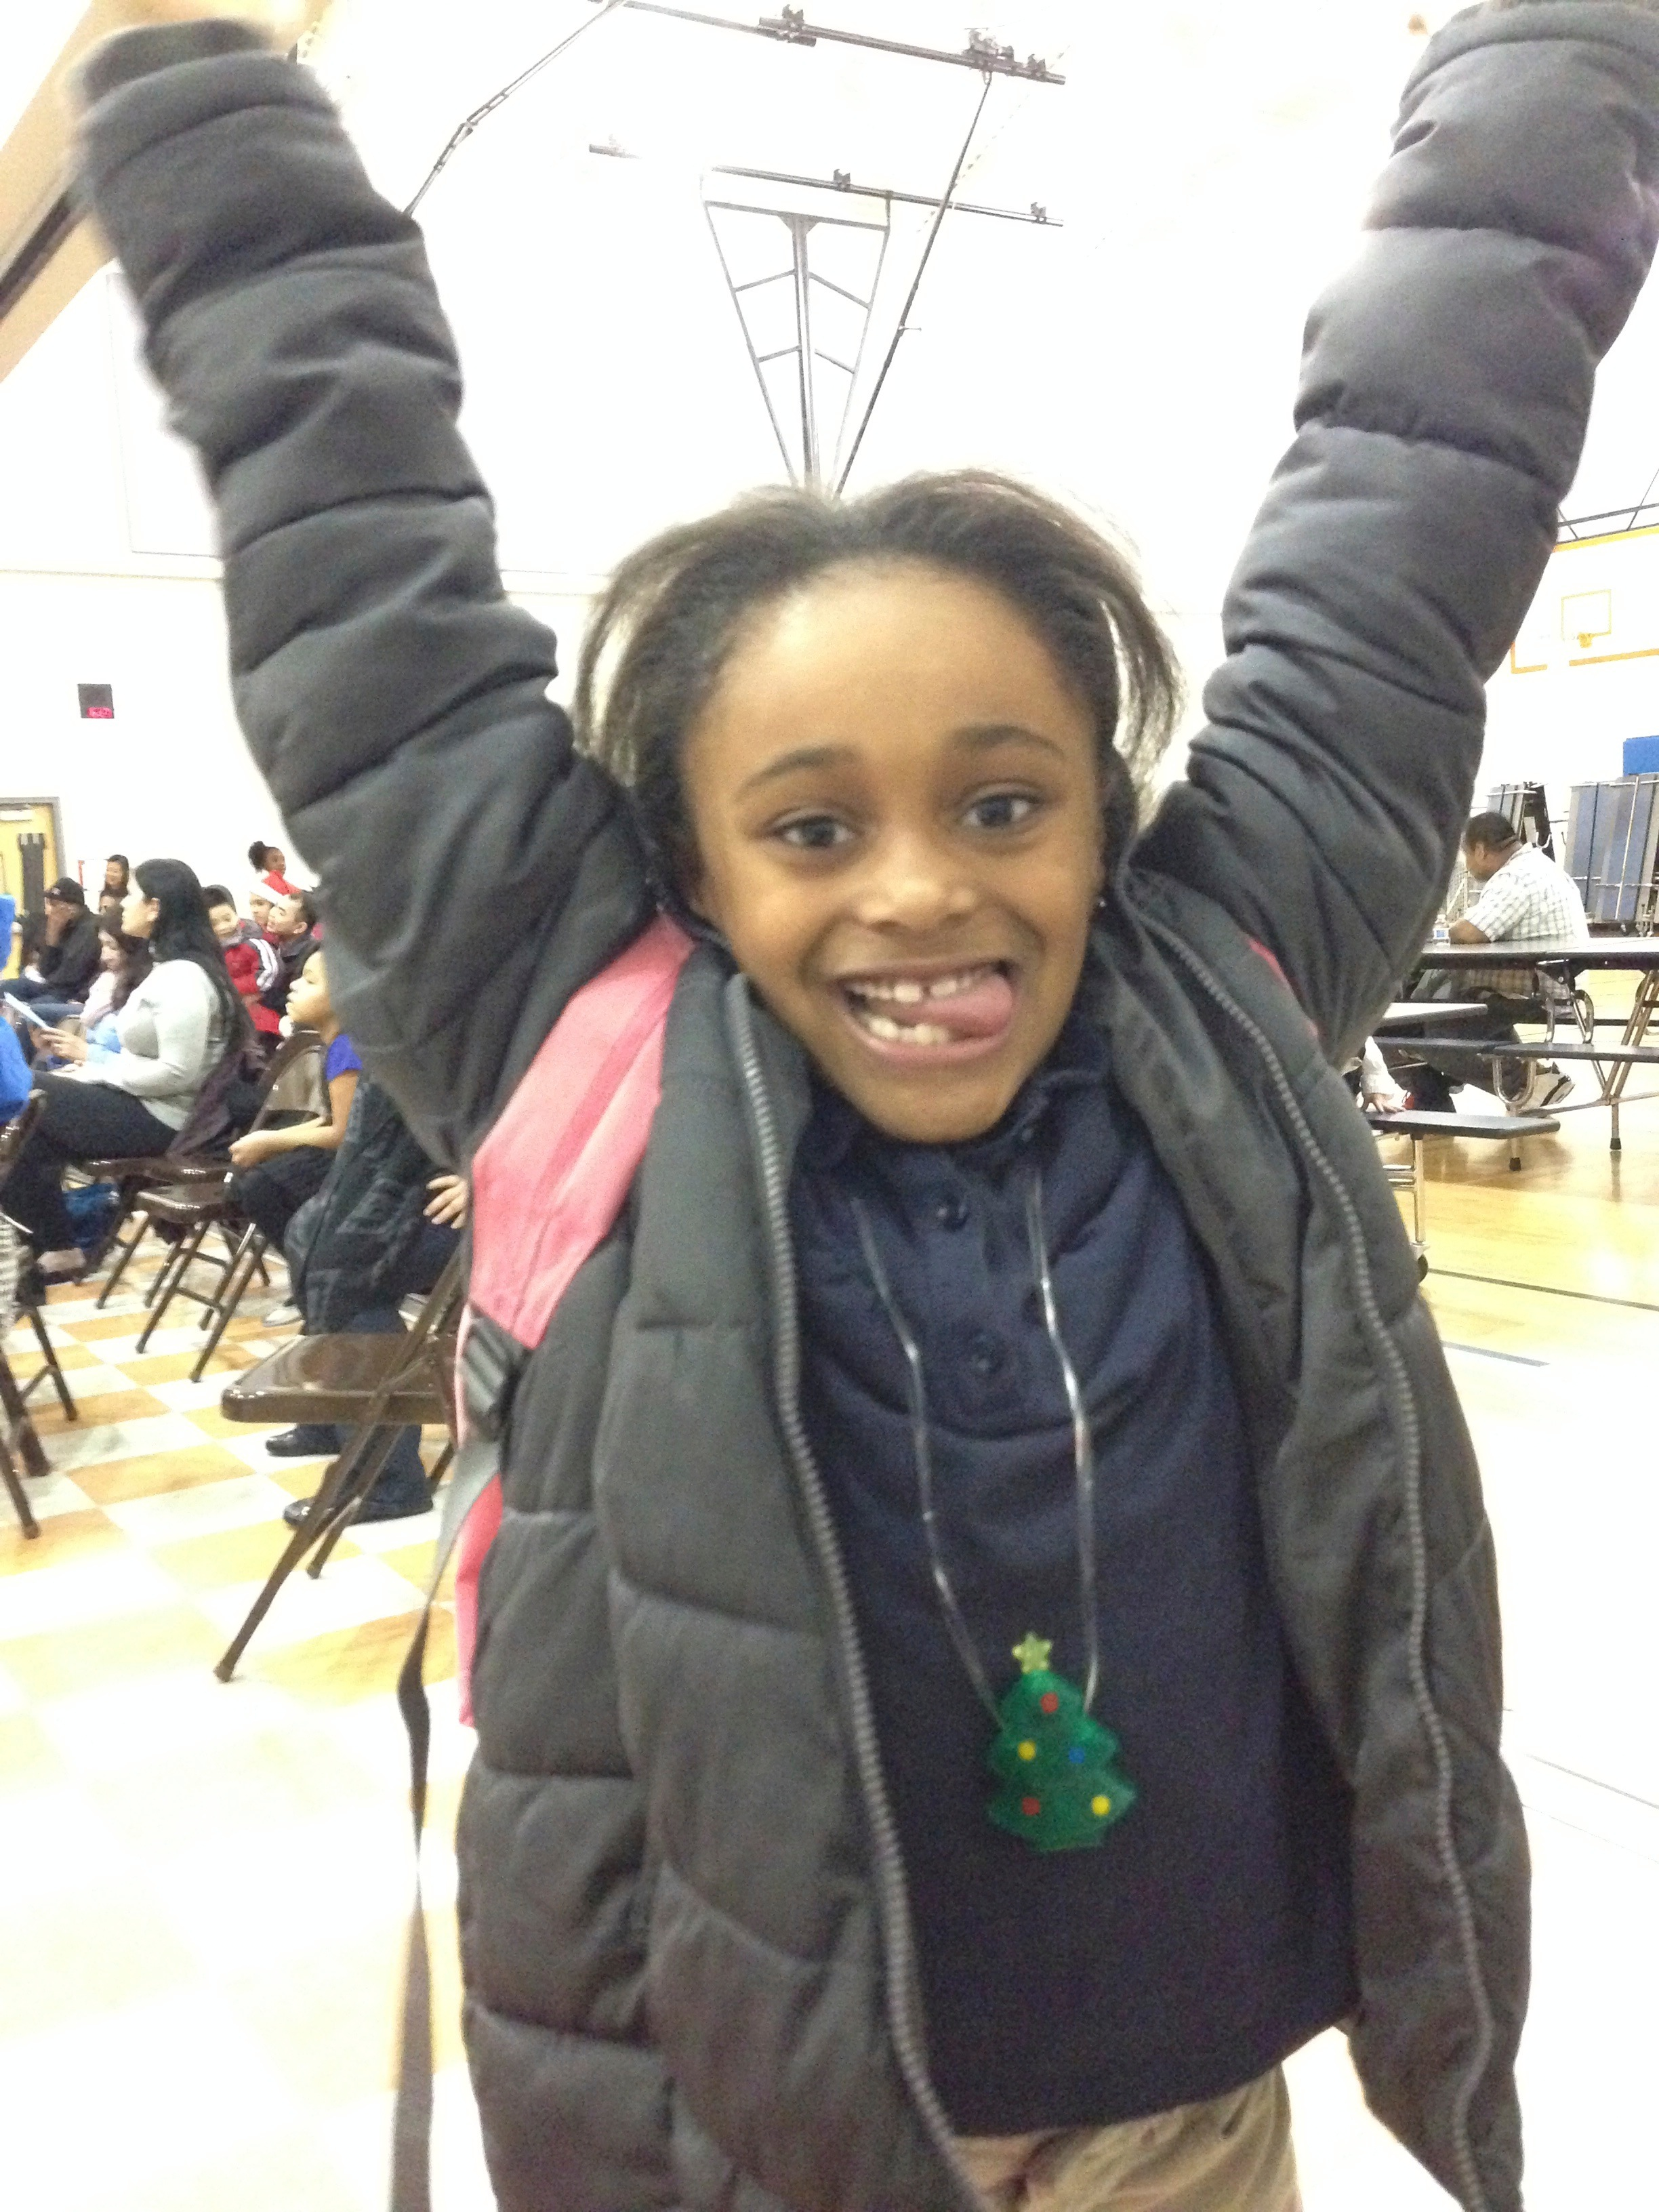 Alivia, an energetic 2nd grader at Emerson, takes the jumping jack challenge!